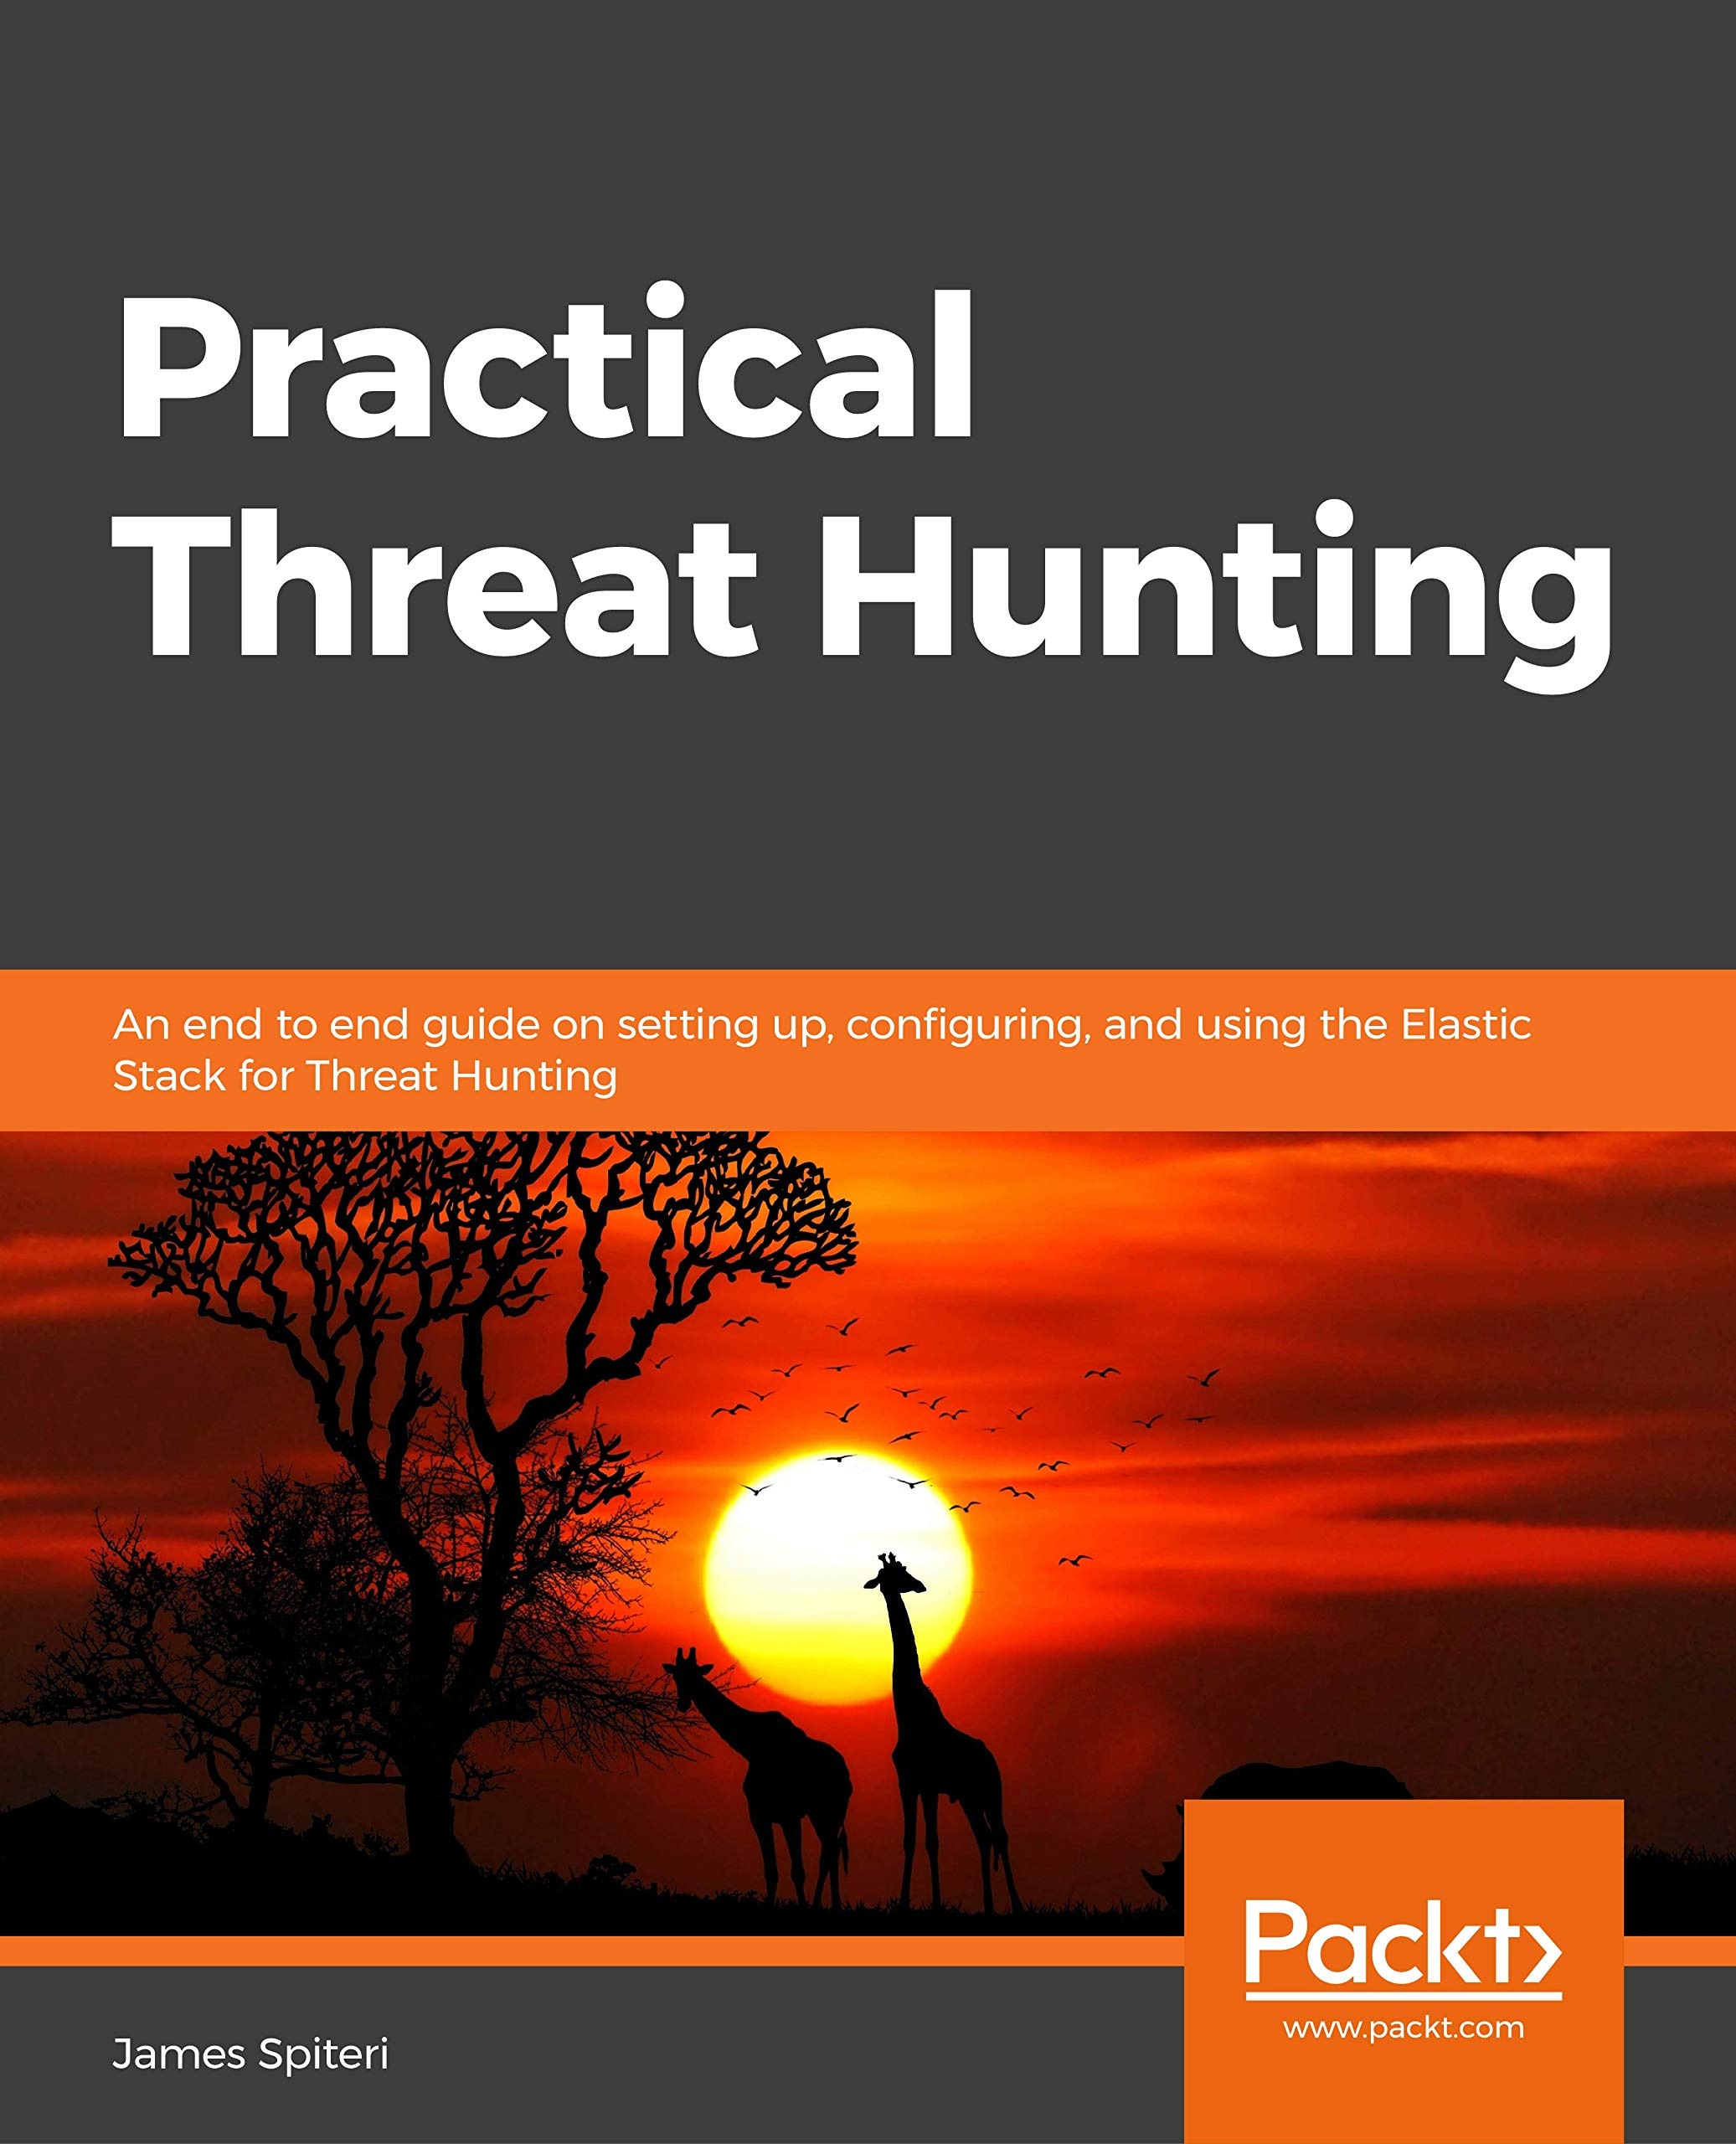 Practical Threat Hunting: An end to end guide on setting up